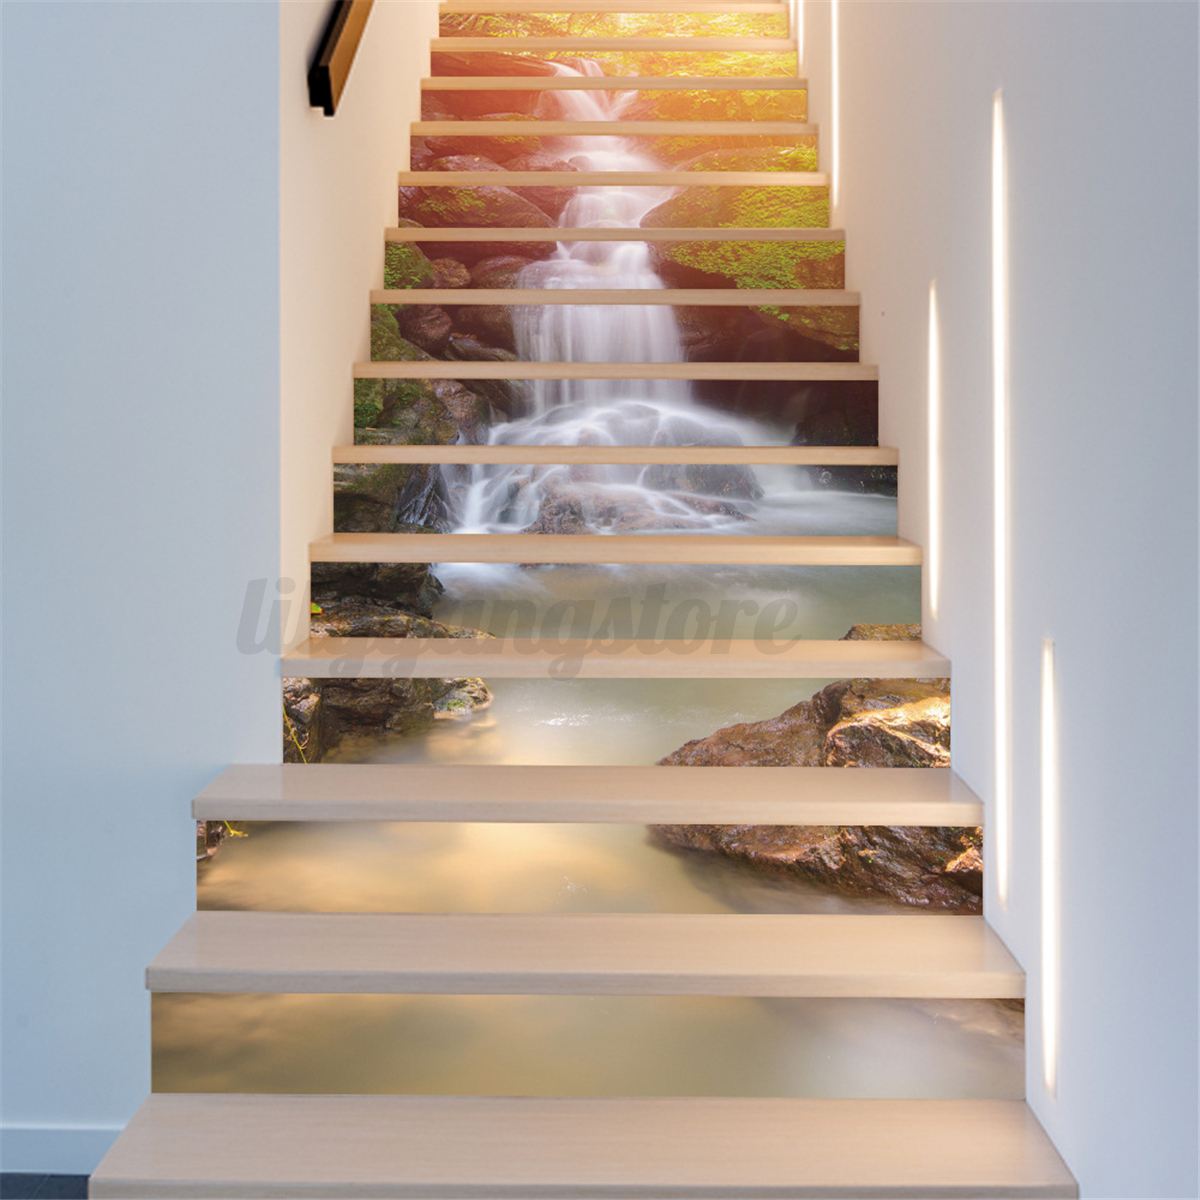 3d stair rise stickers decor photo mural vinyl wallpaper bedroom decor 18 100cm ebay. Black Bedroom Furniture Sets. Home Design Ideas